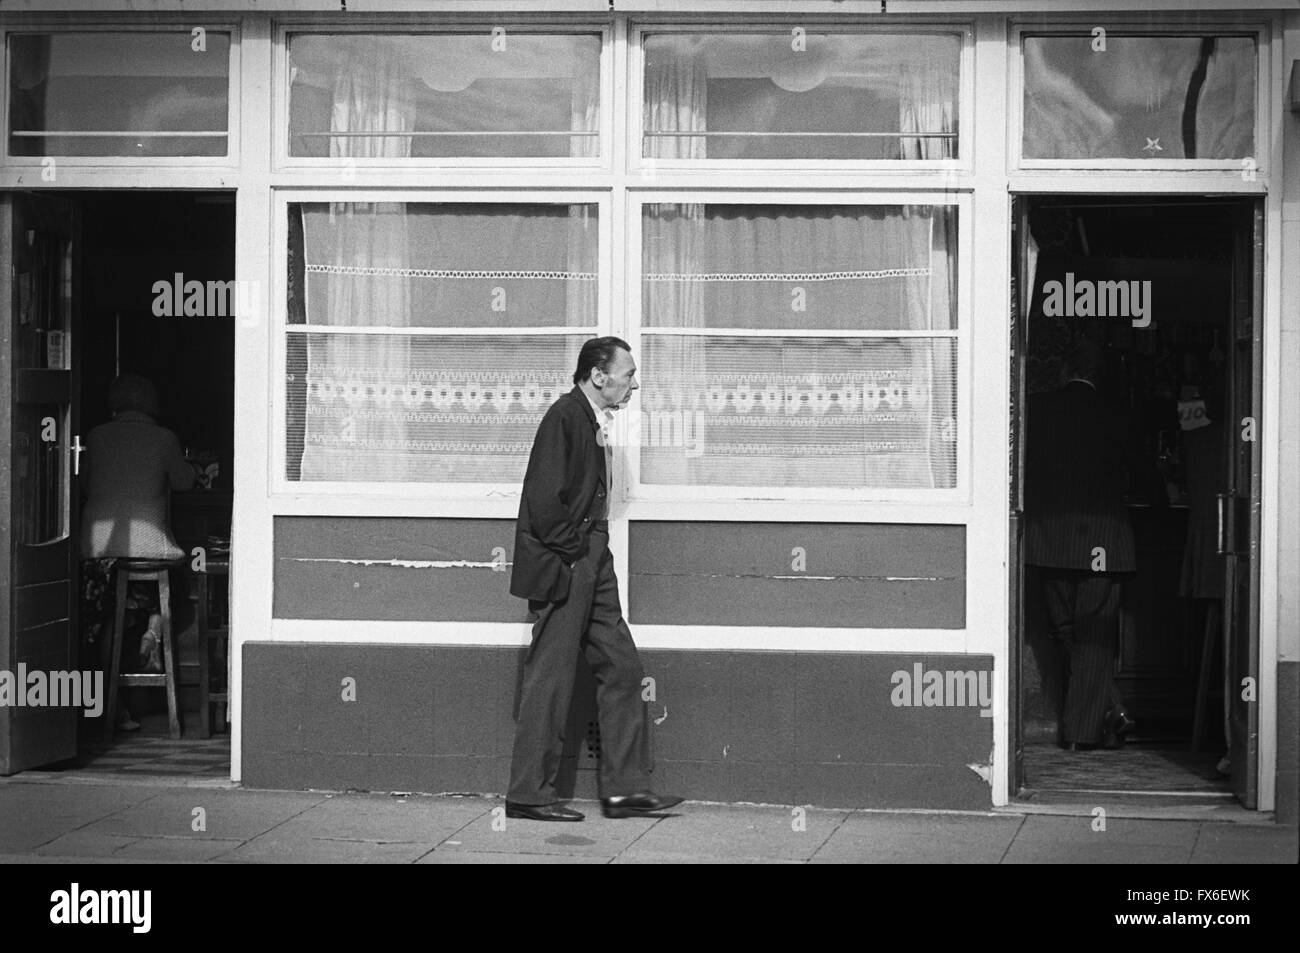 archive-image-of-a-man-walking-between-two-entrances-of-a-pub-lambeth-FX6EWK.jpg